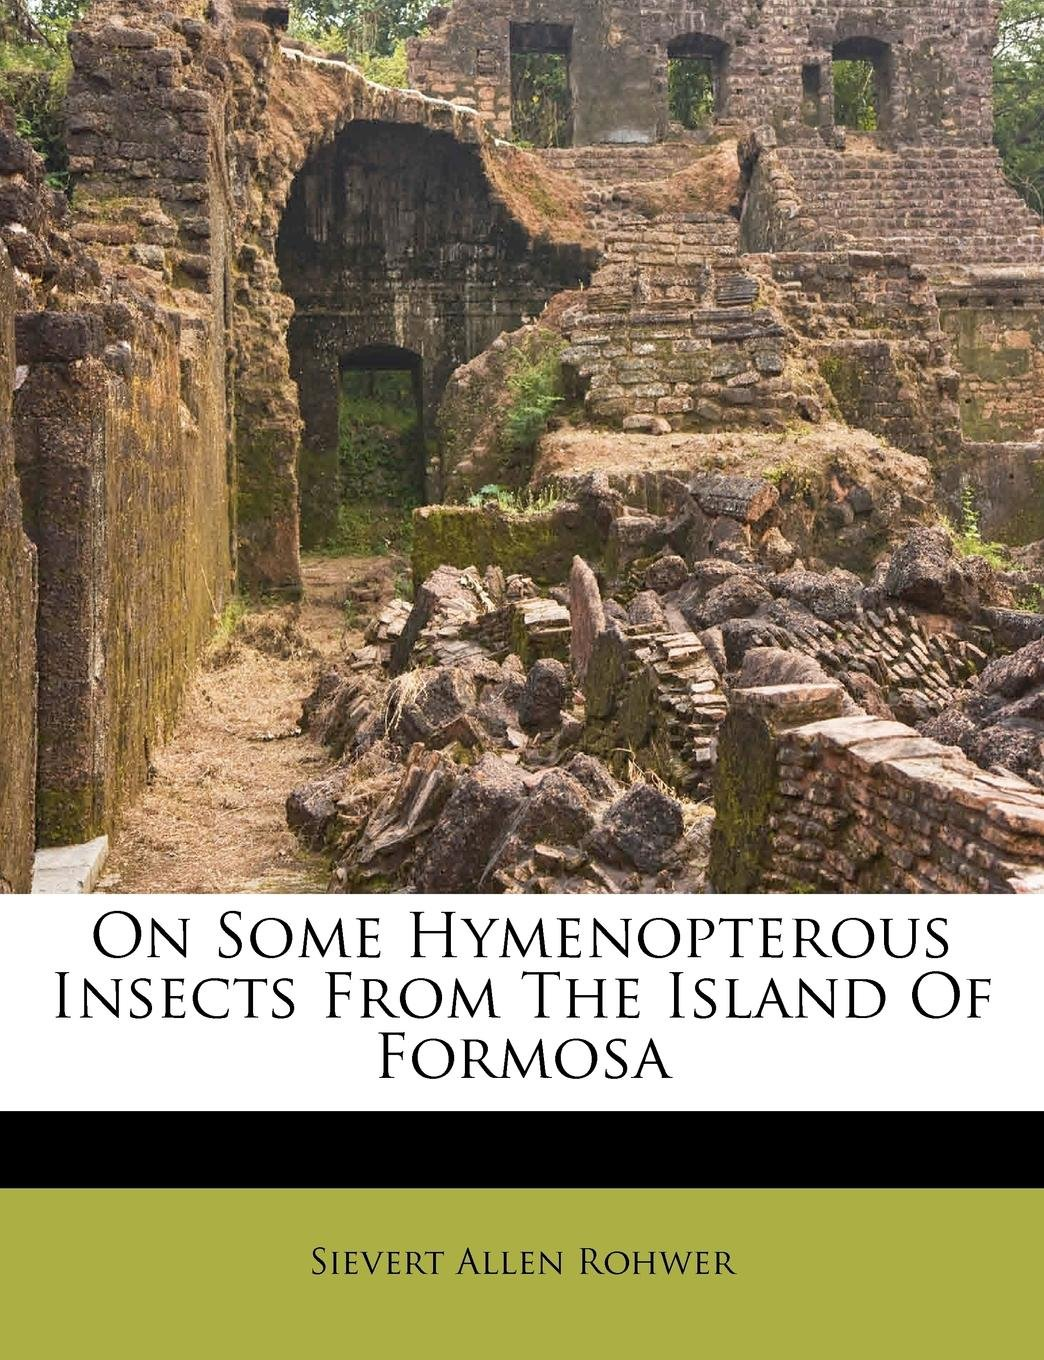 Download On Some Hymenopterous Insects From The Island Of Formosa pdf